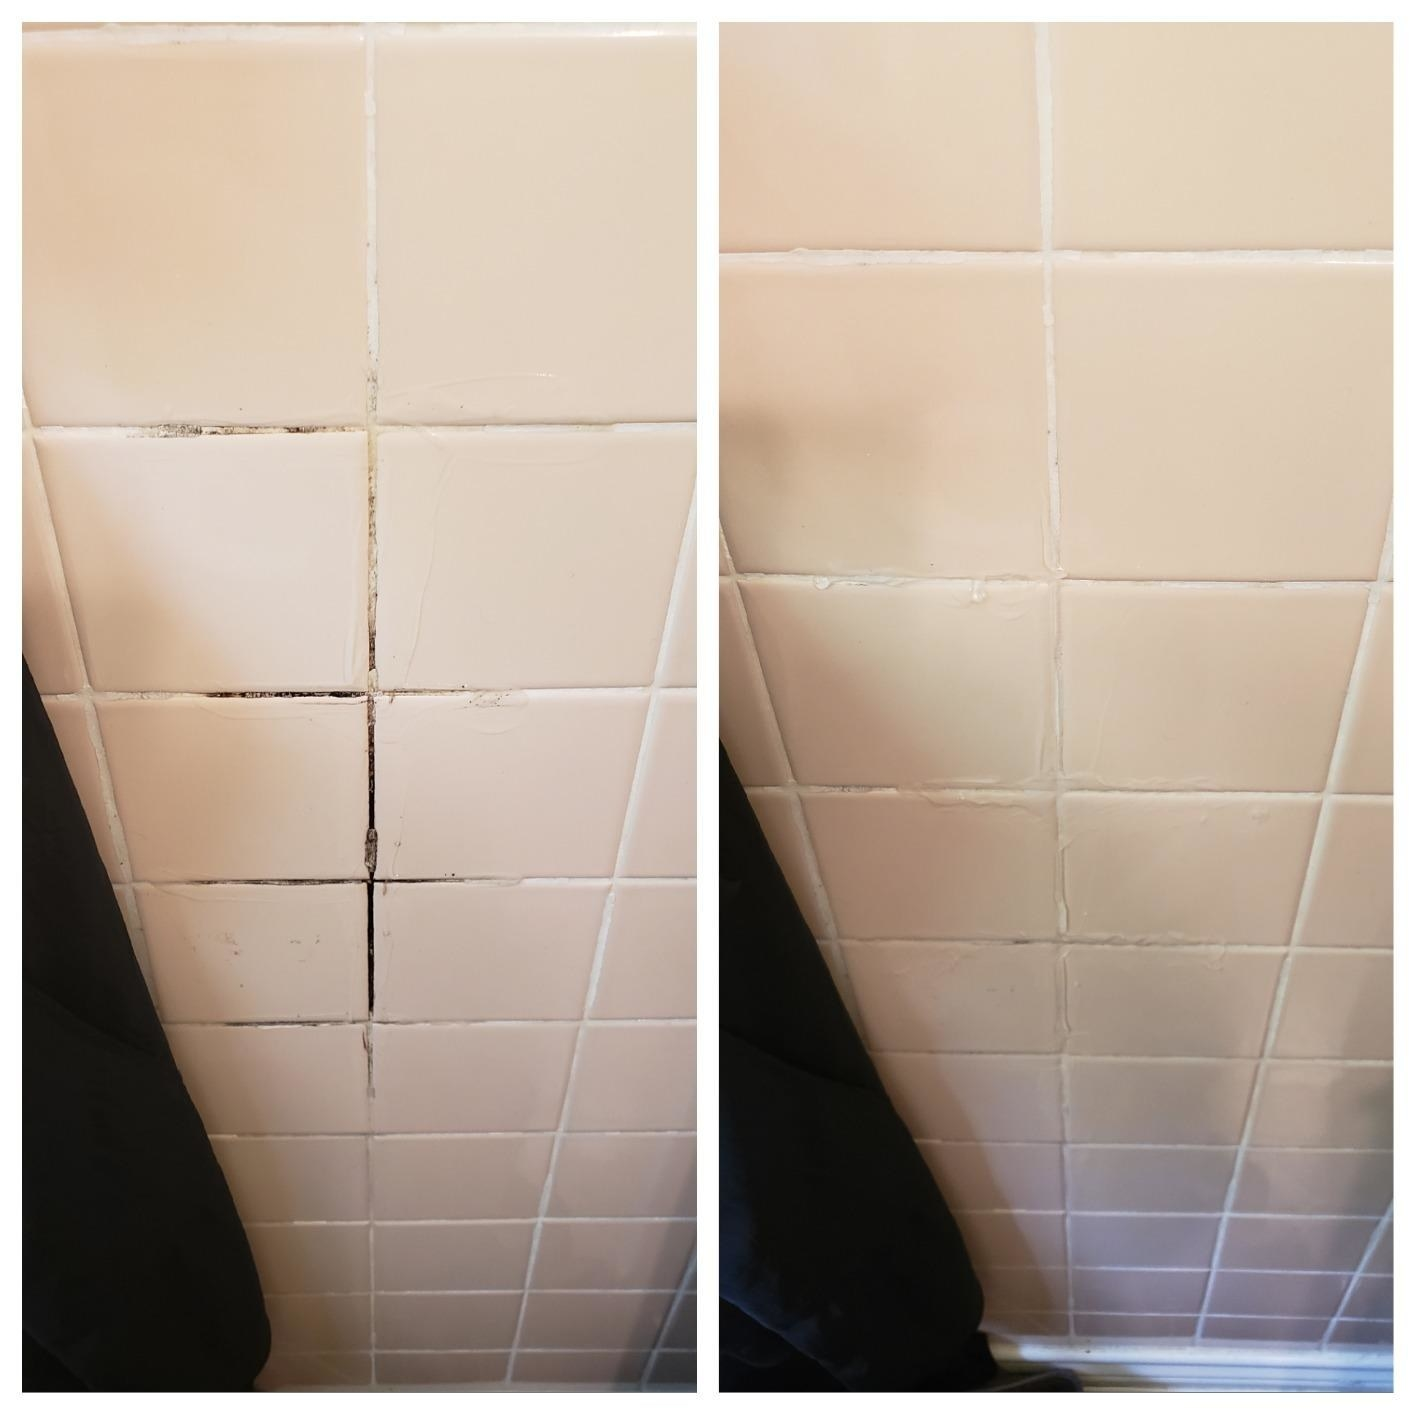 A before/after of black mold being removed from bathroom tile grout